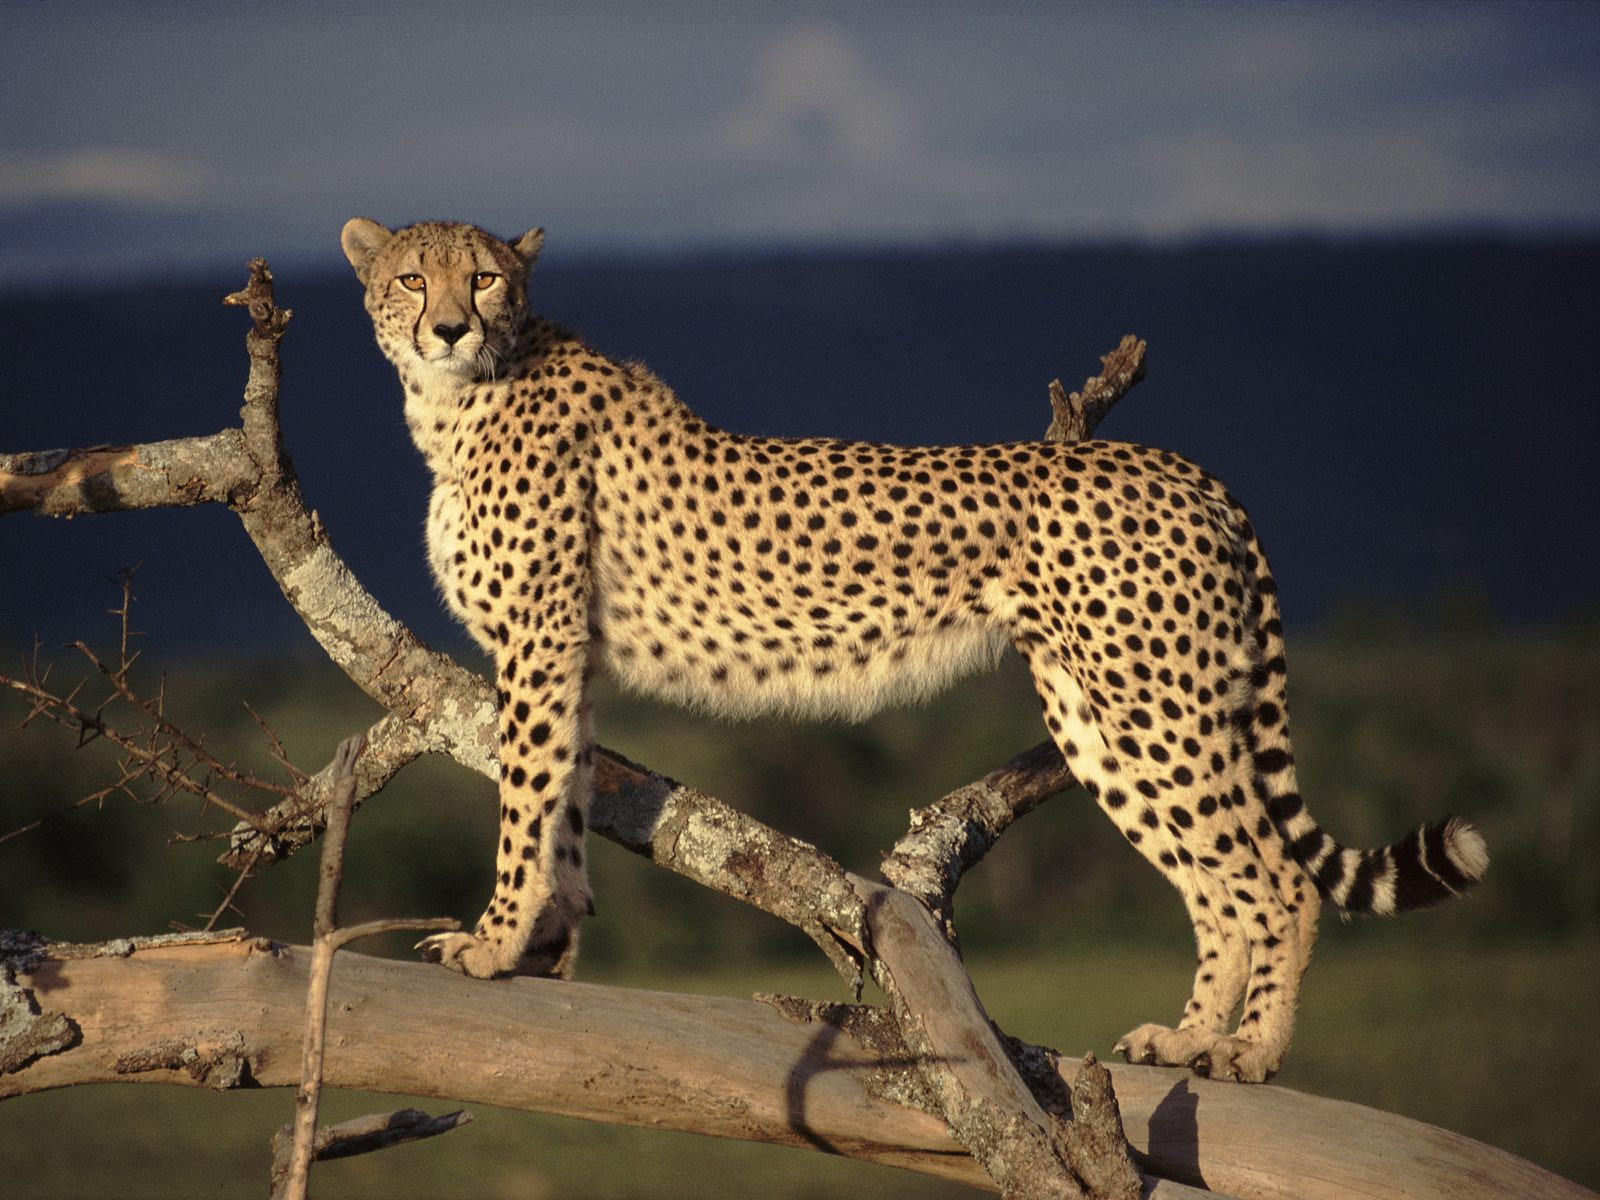 Cheetahs, Dangerous Animals With Great Speed